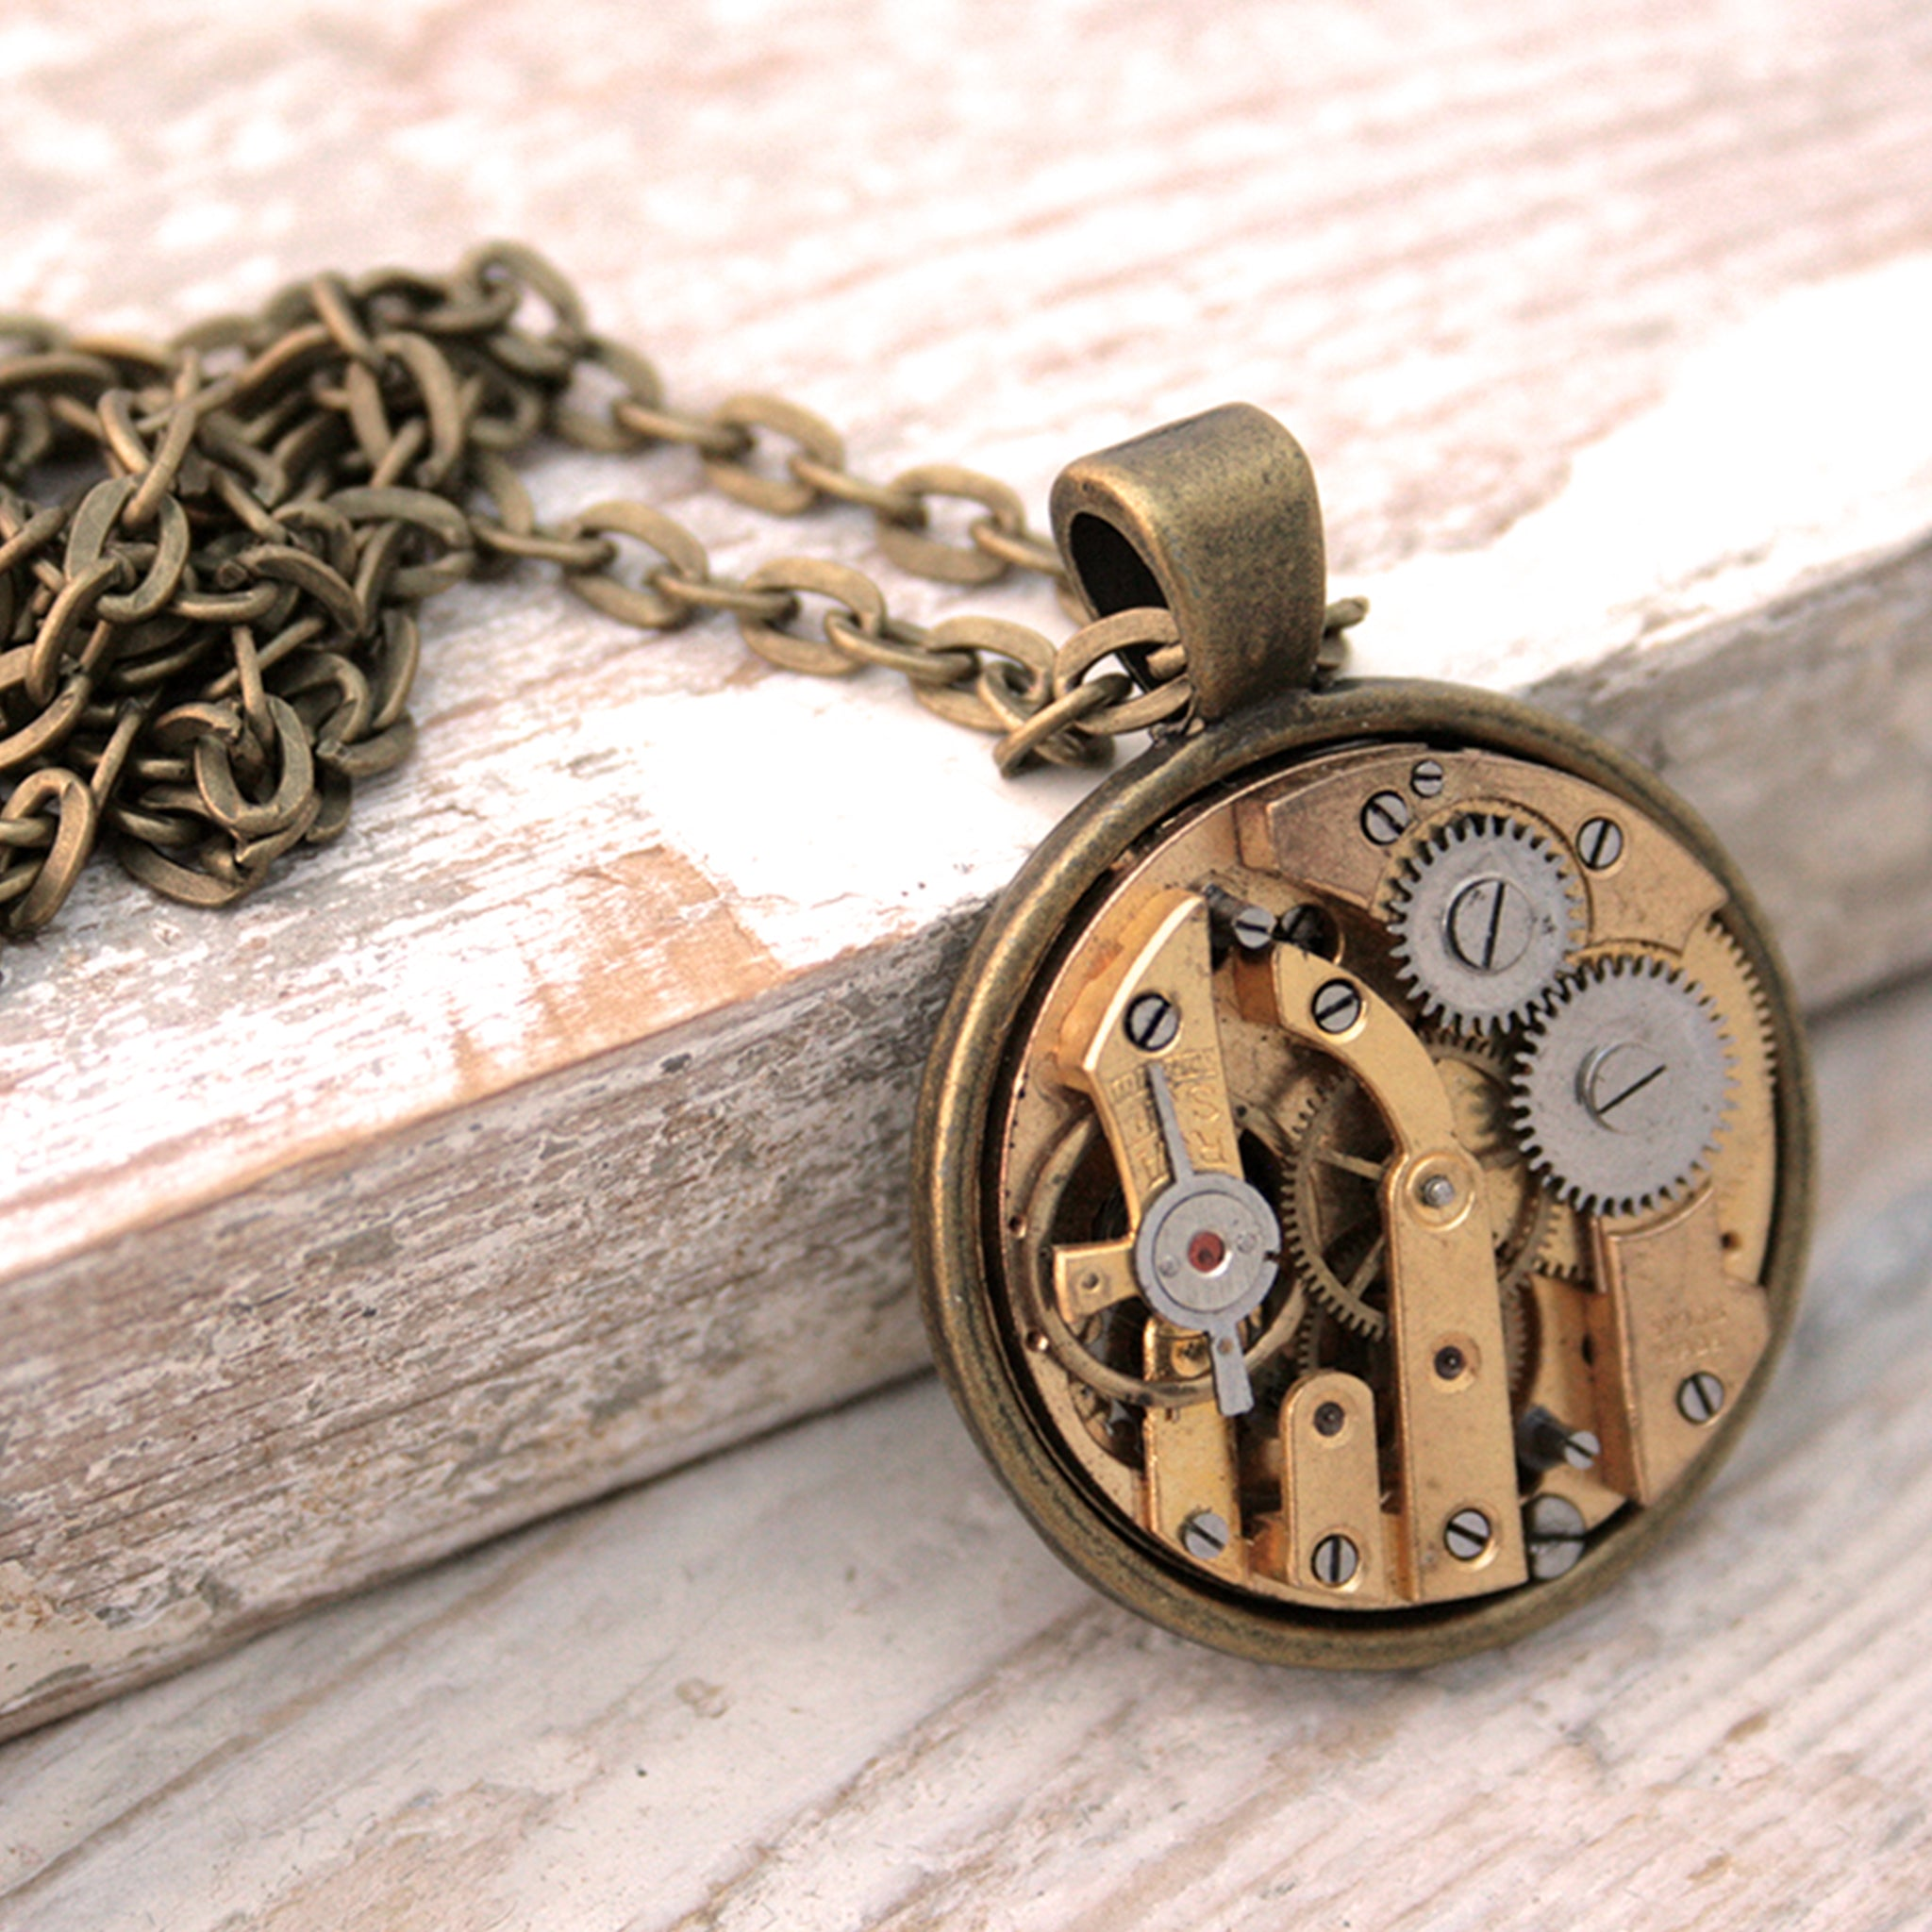 Steampunk Statement Necklace with Gold tone watch movement